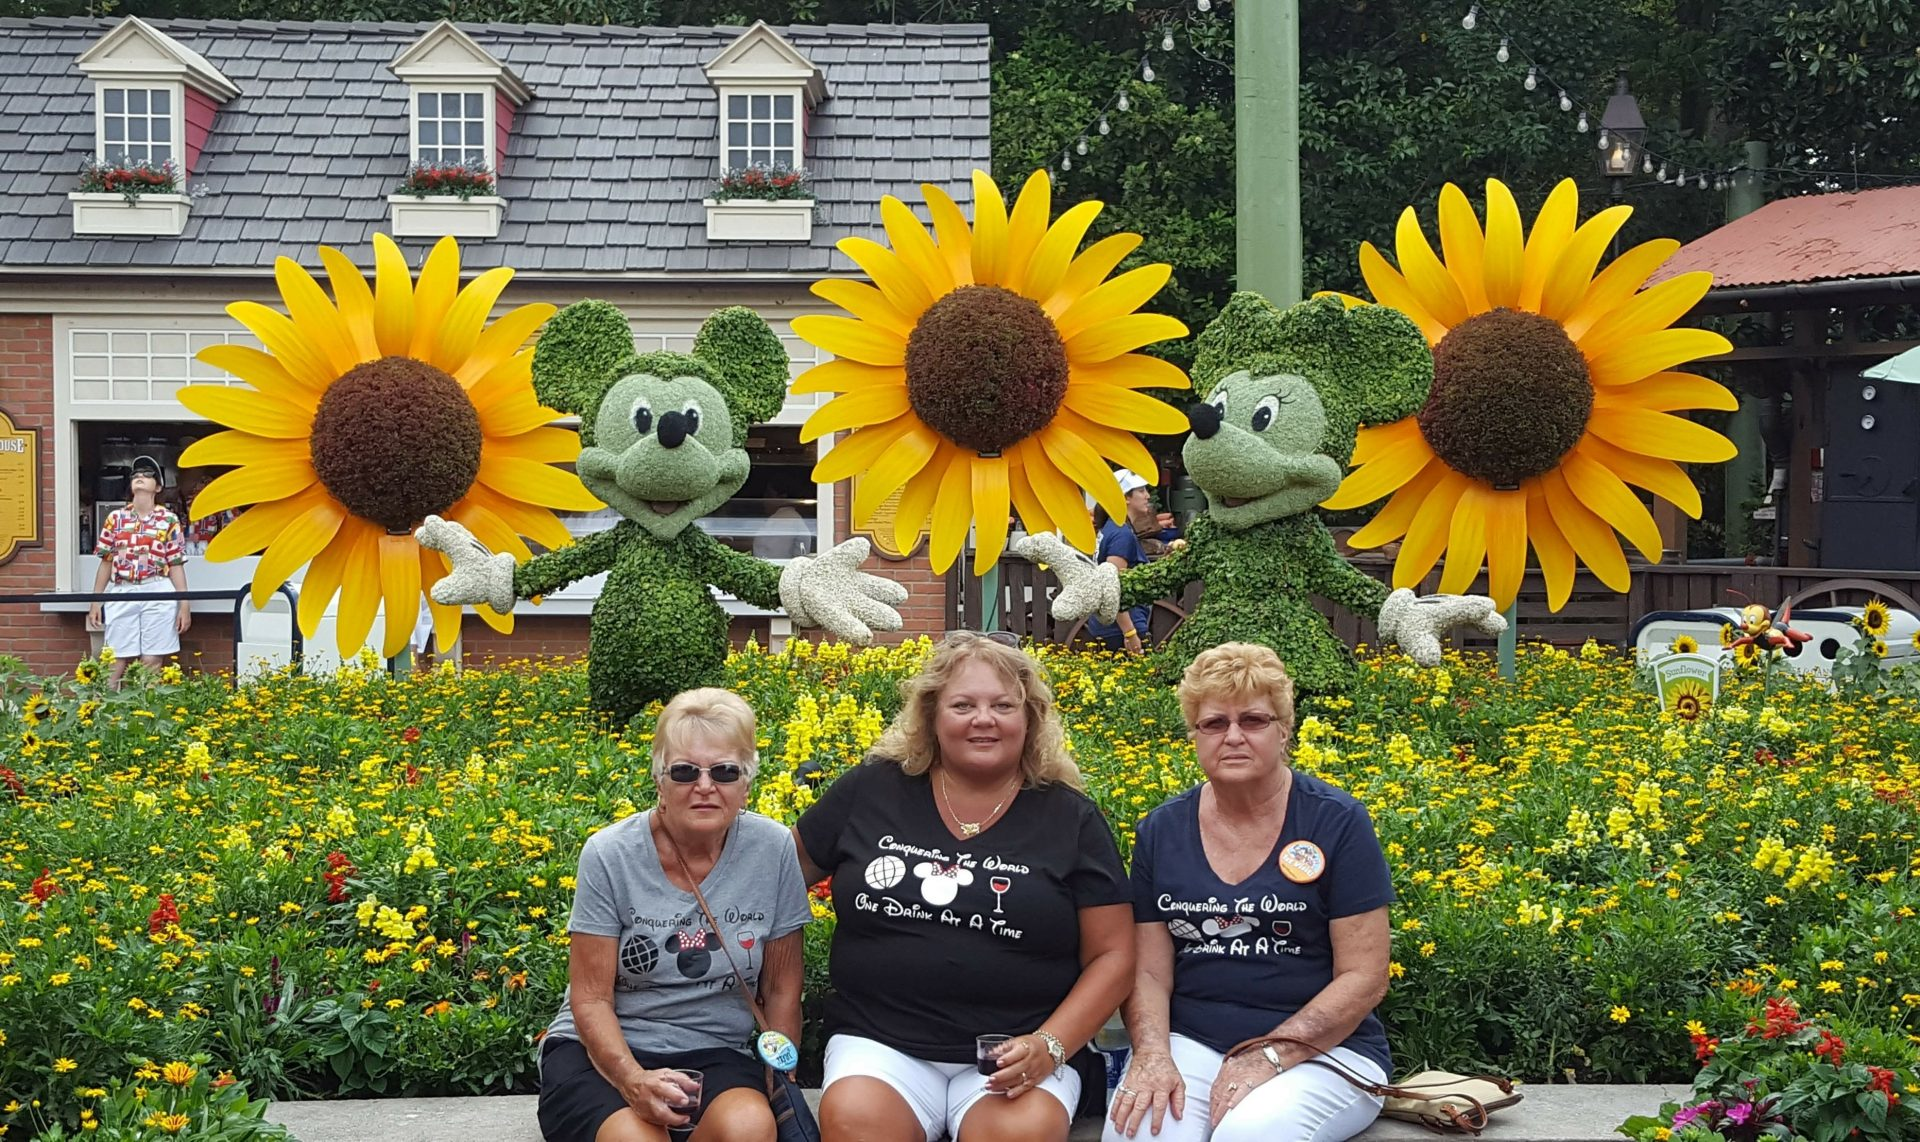 At Disney with Ann Atkins